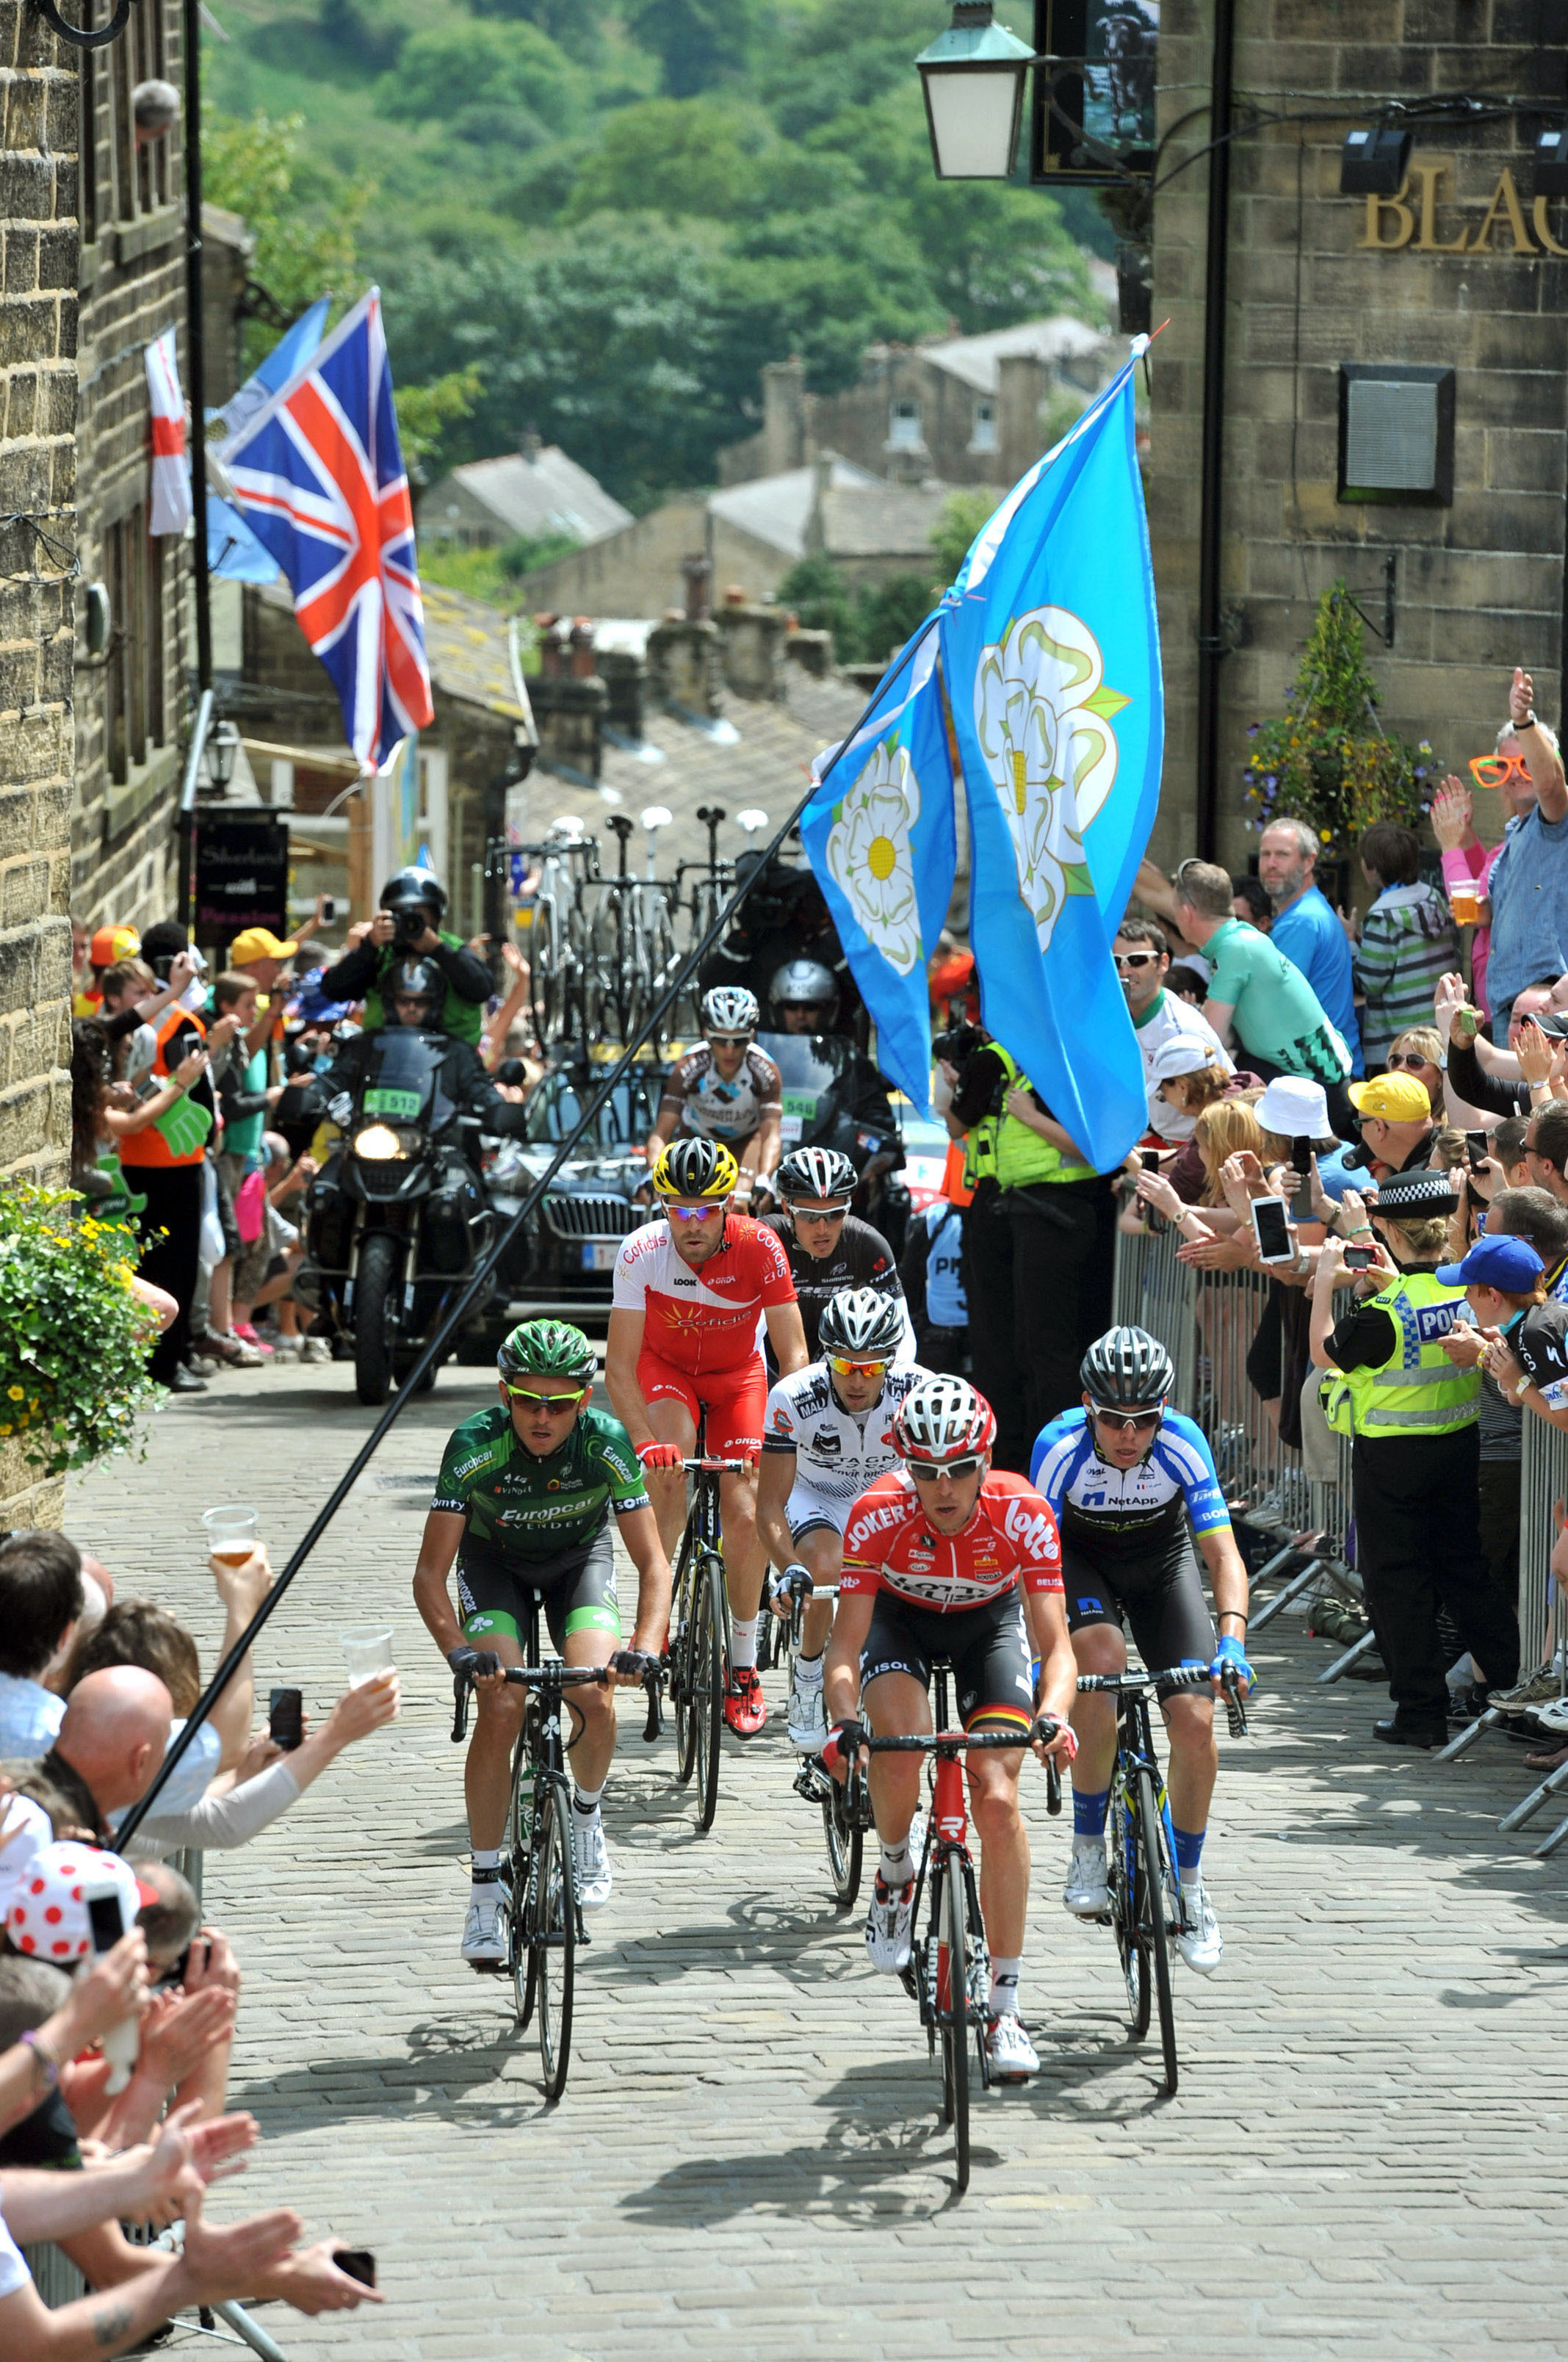 Crowds line Main Street, Haworth, to watch the riders tackle the cobbled climb